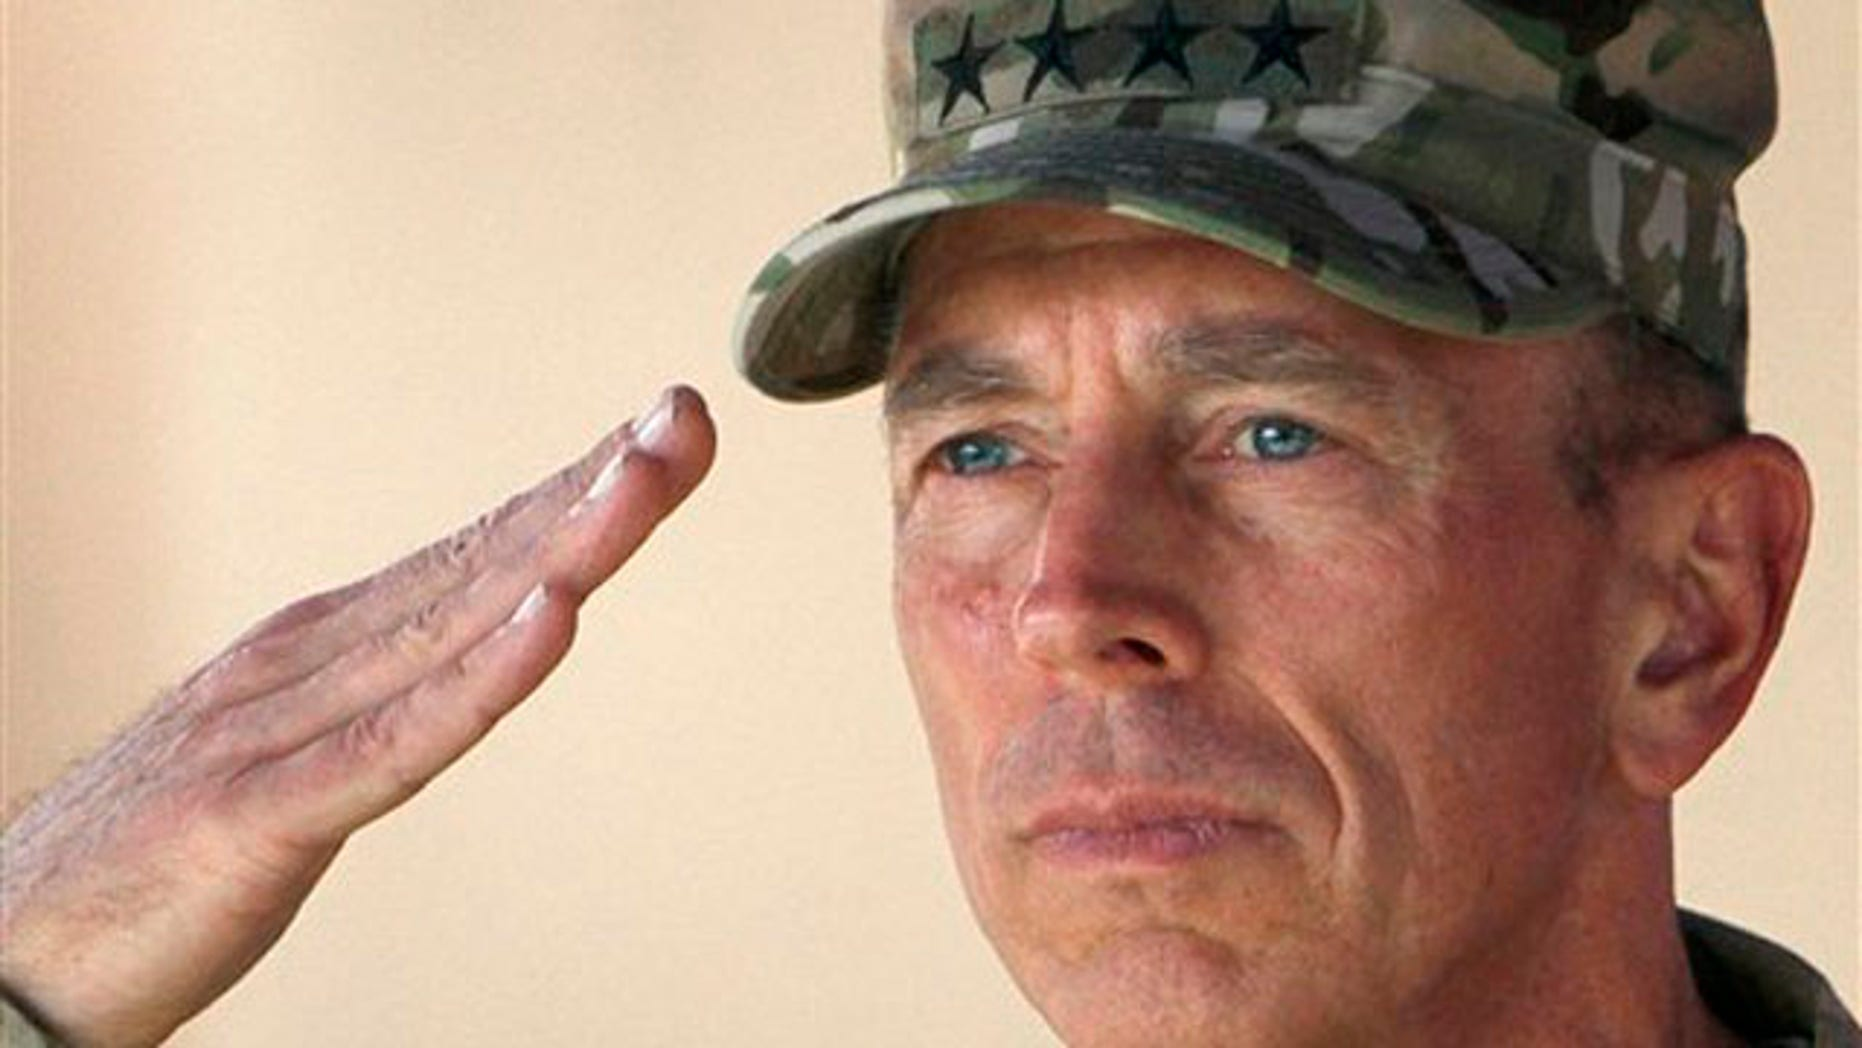 In this July 18 file photo, Gen. David Petraeus salutes during a changing of command ceremony in Kabul, Afghanistan.